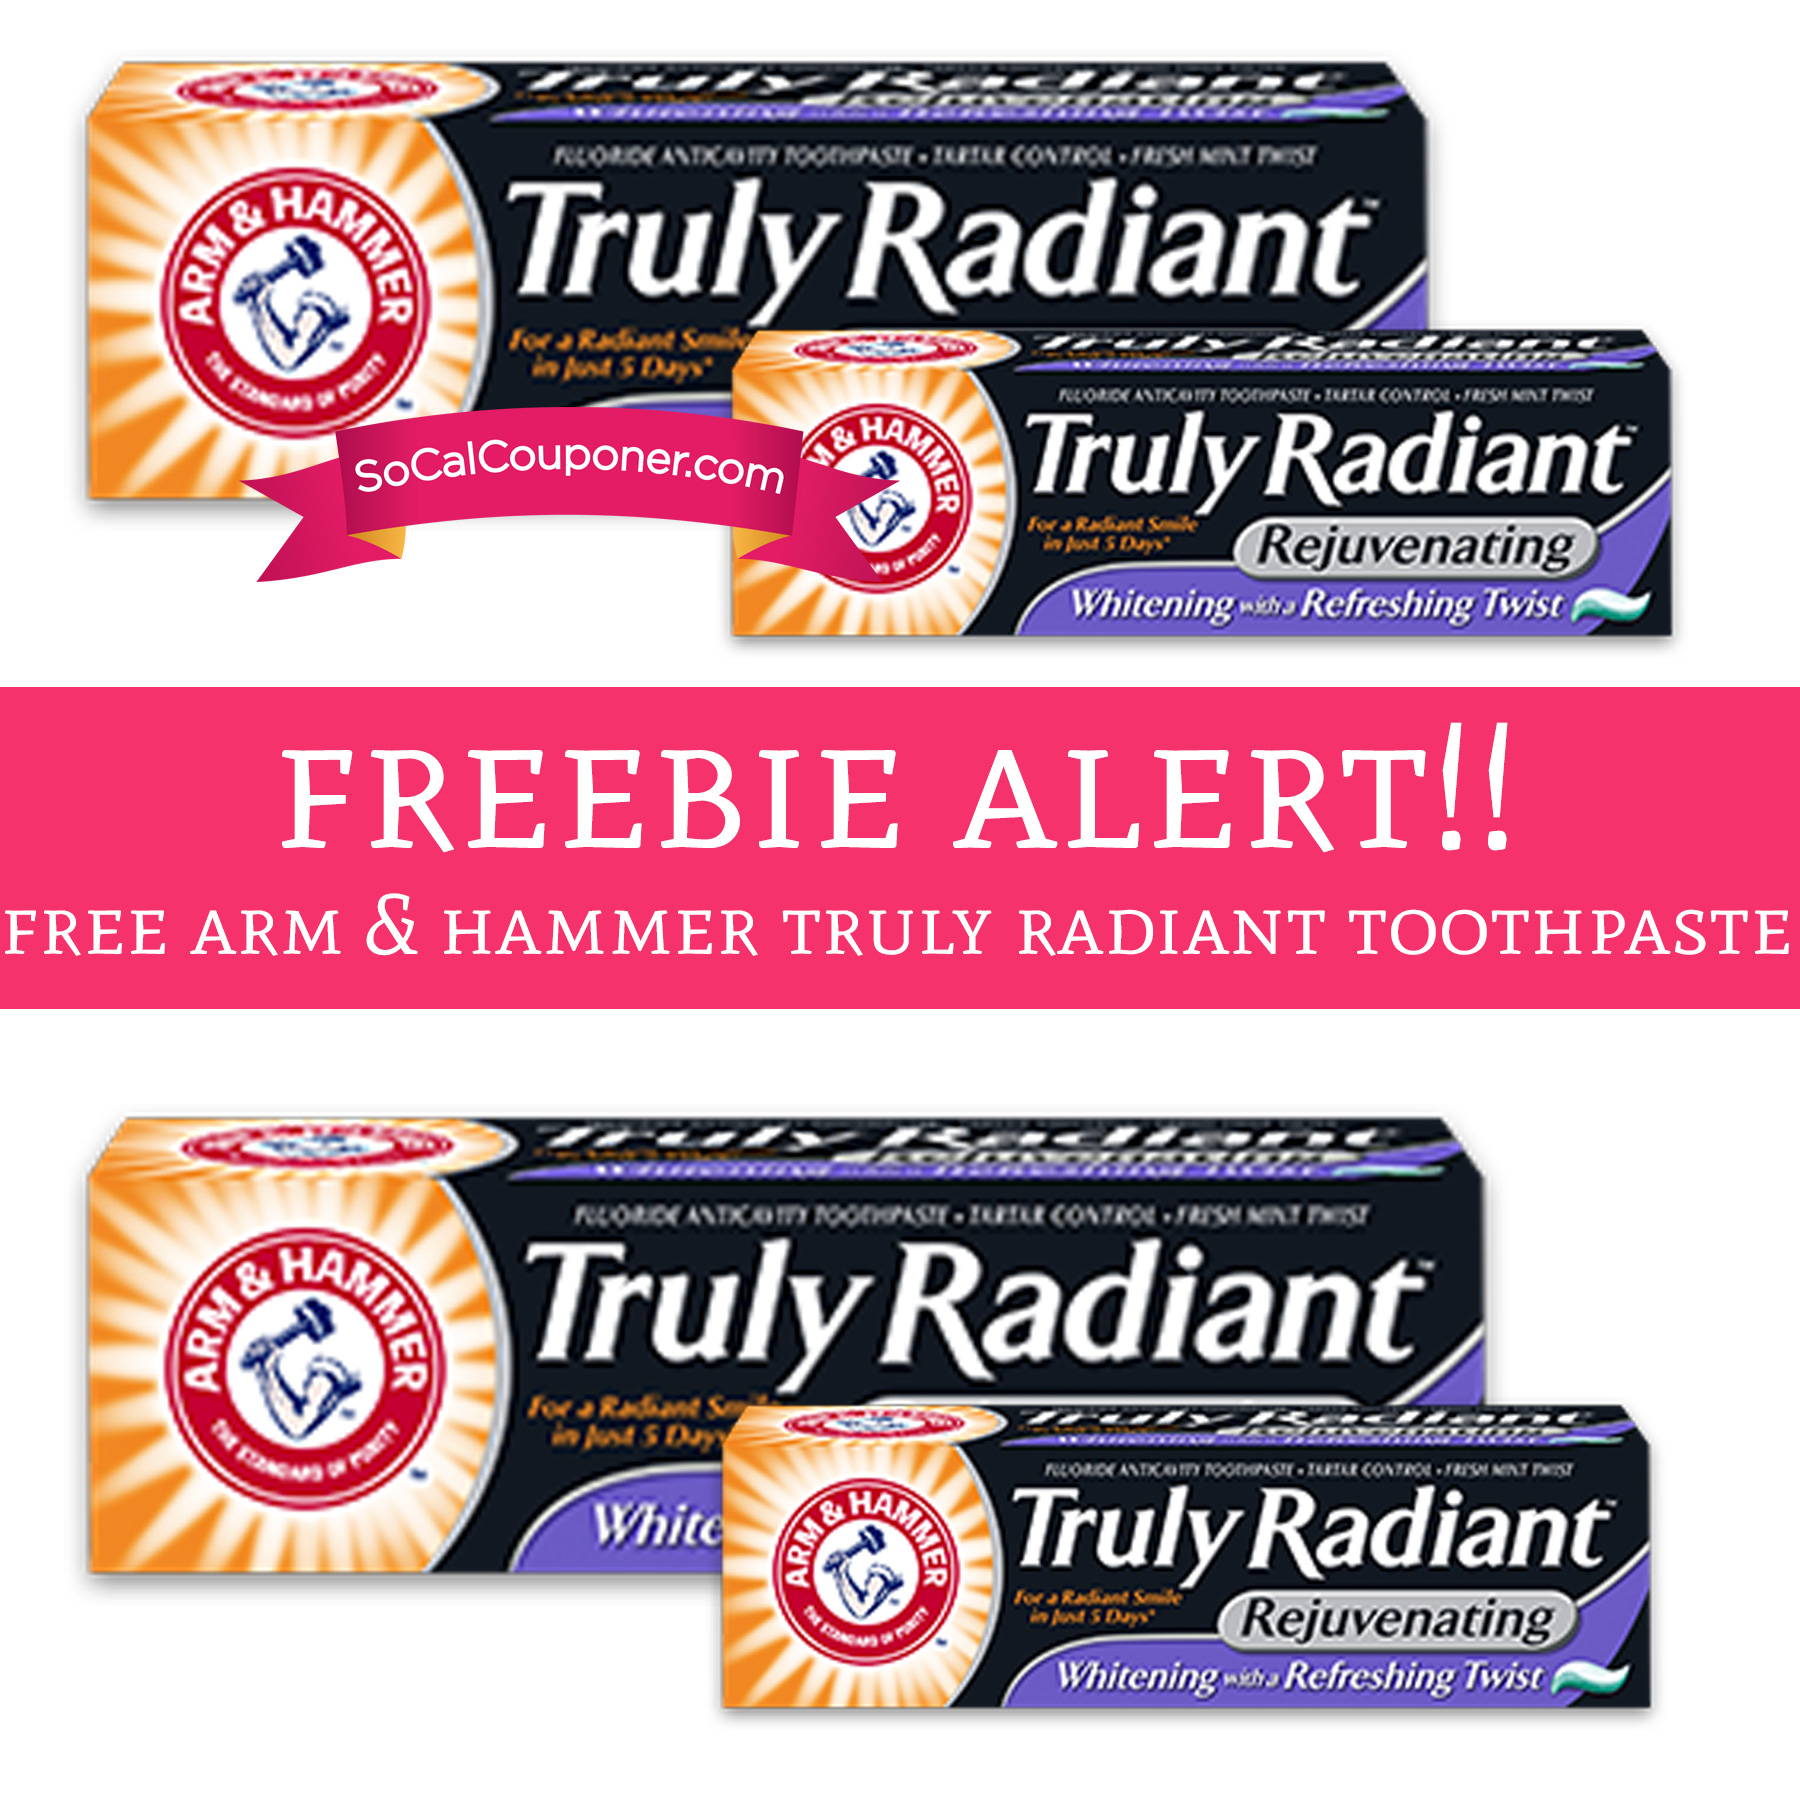 Free arm and hammer toothpaste - Pier one hour